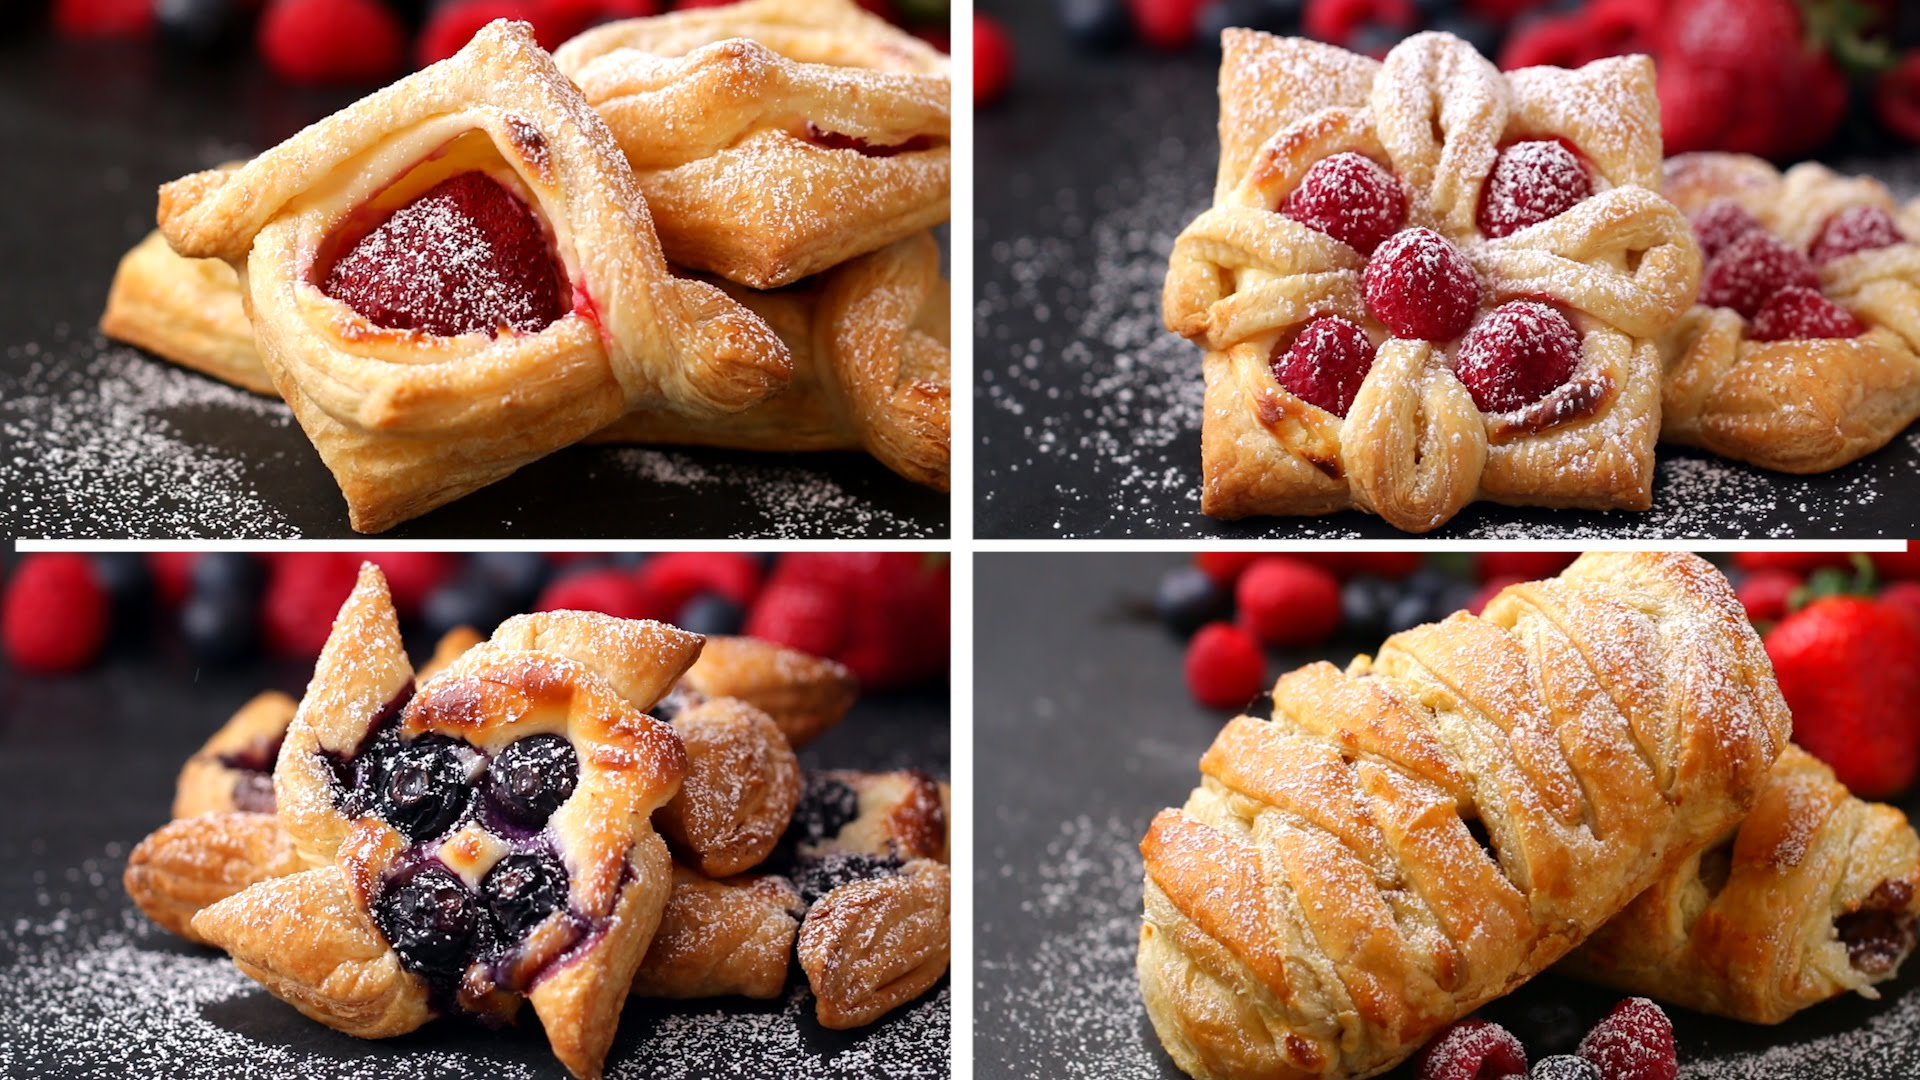 Best Pastry Image